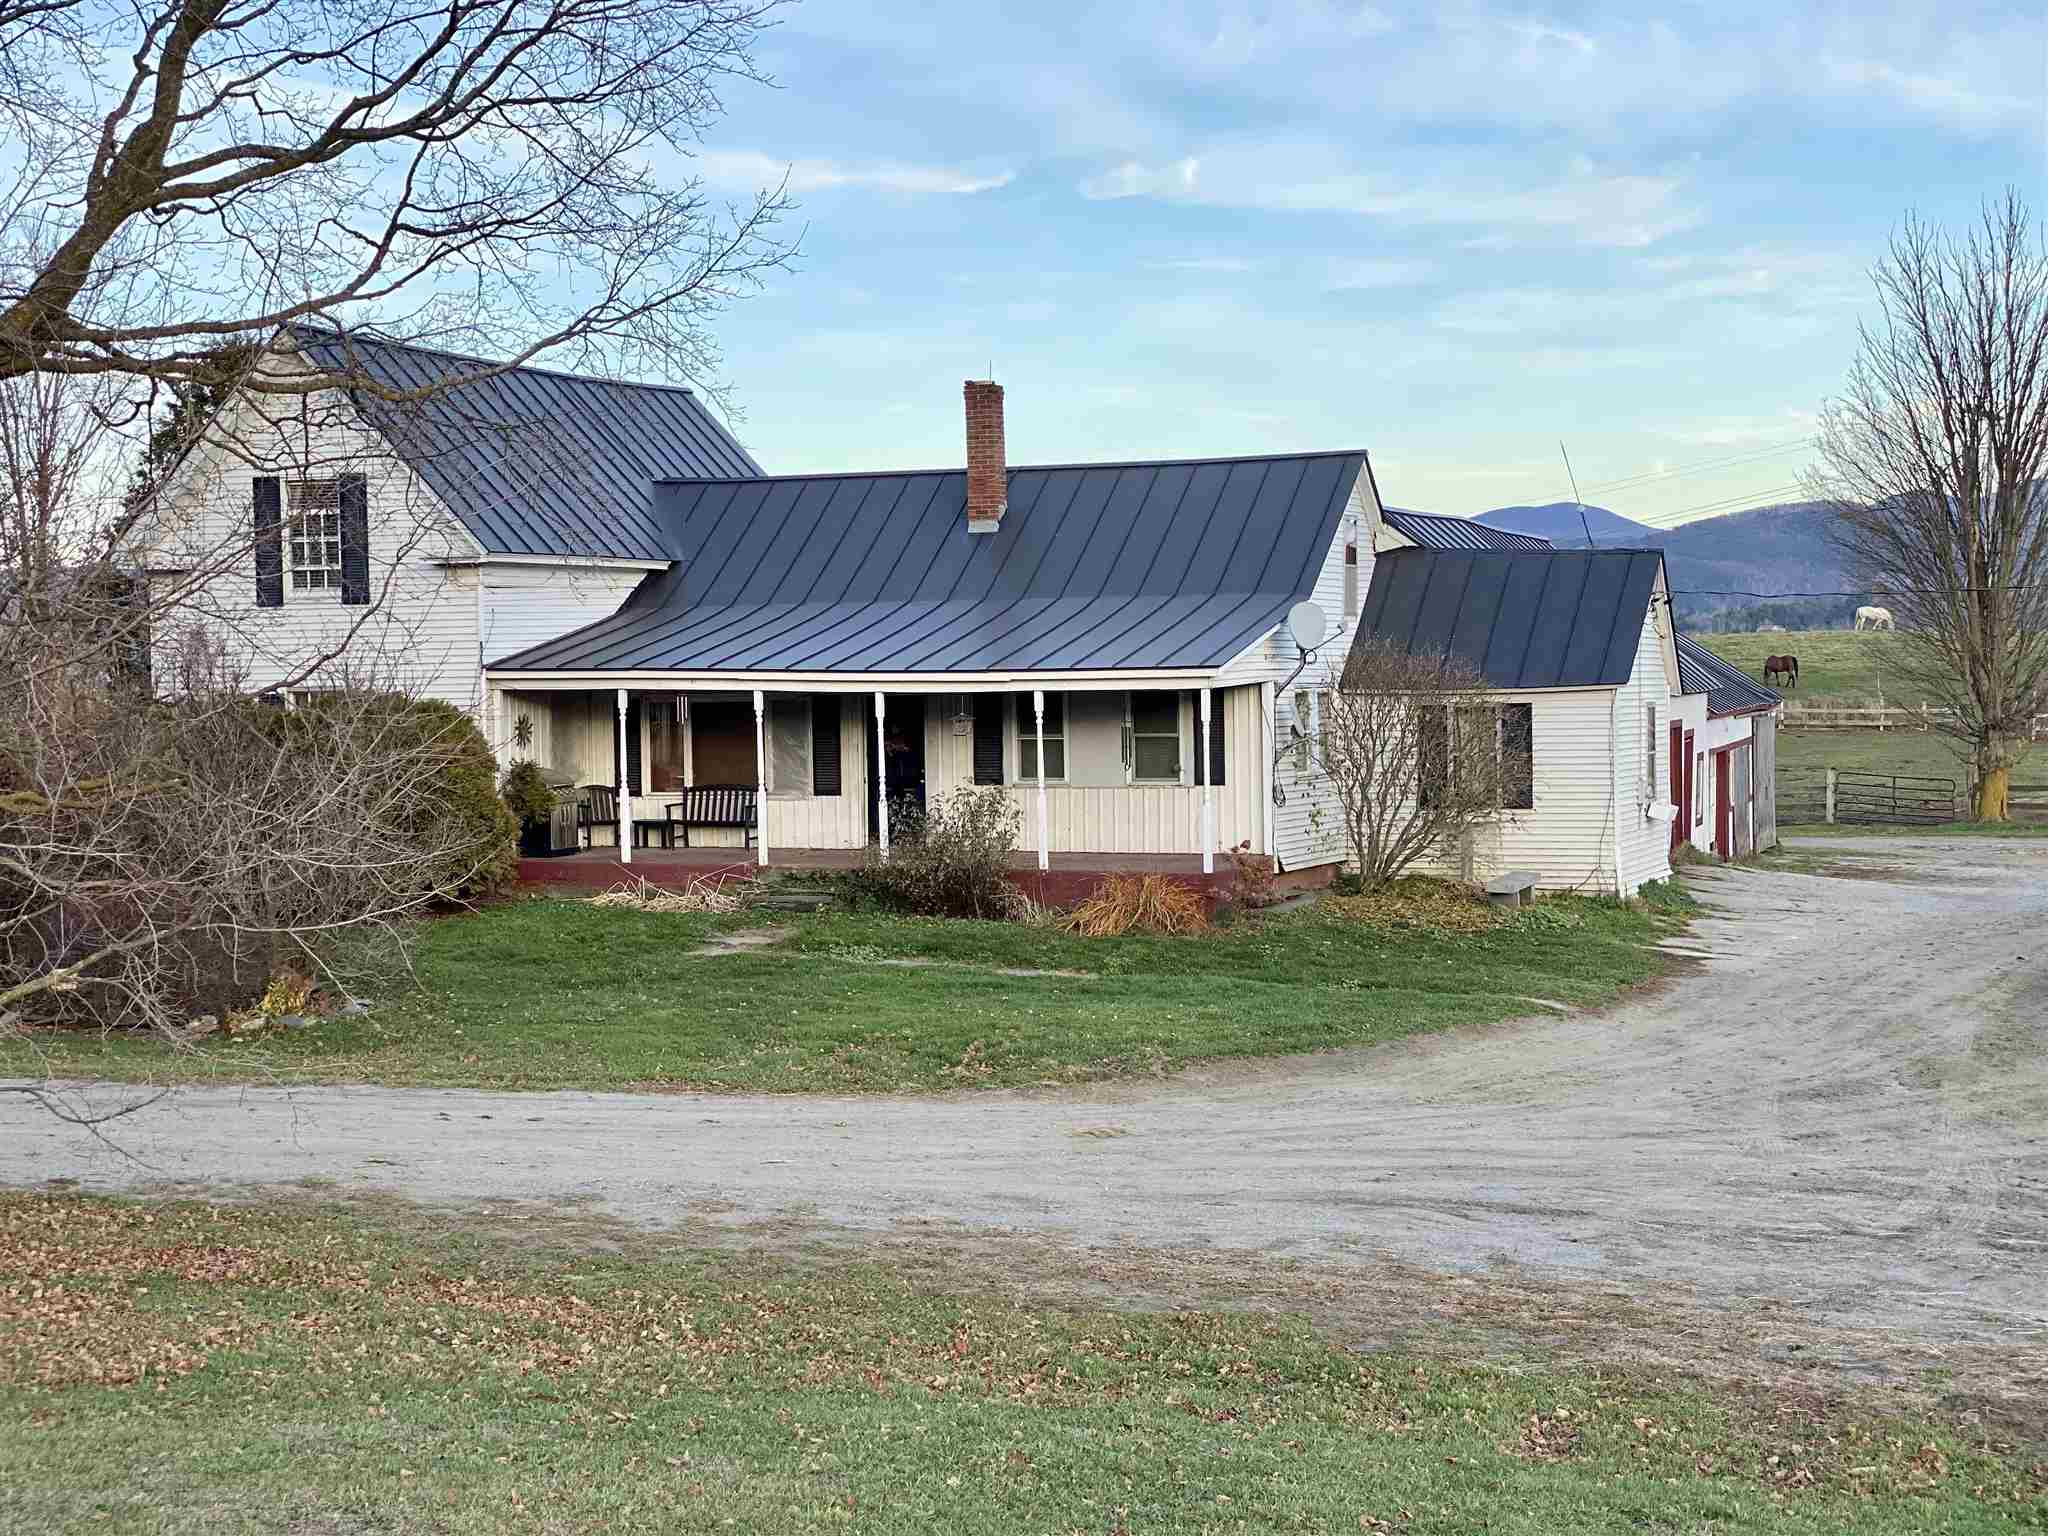 Photo of 89 Lower Usle Road Barre Town VT 05641